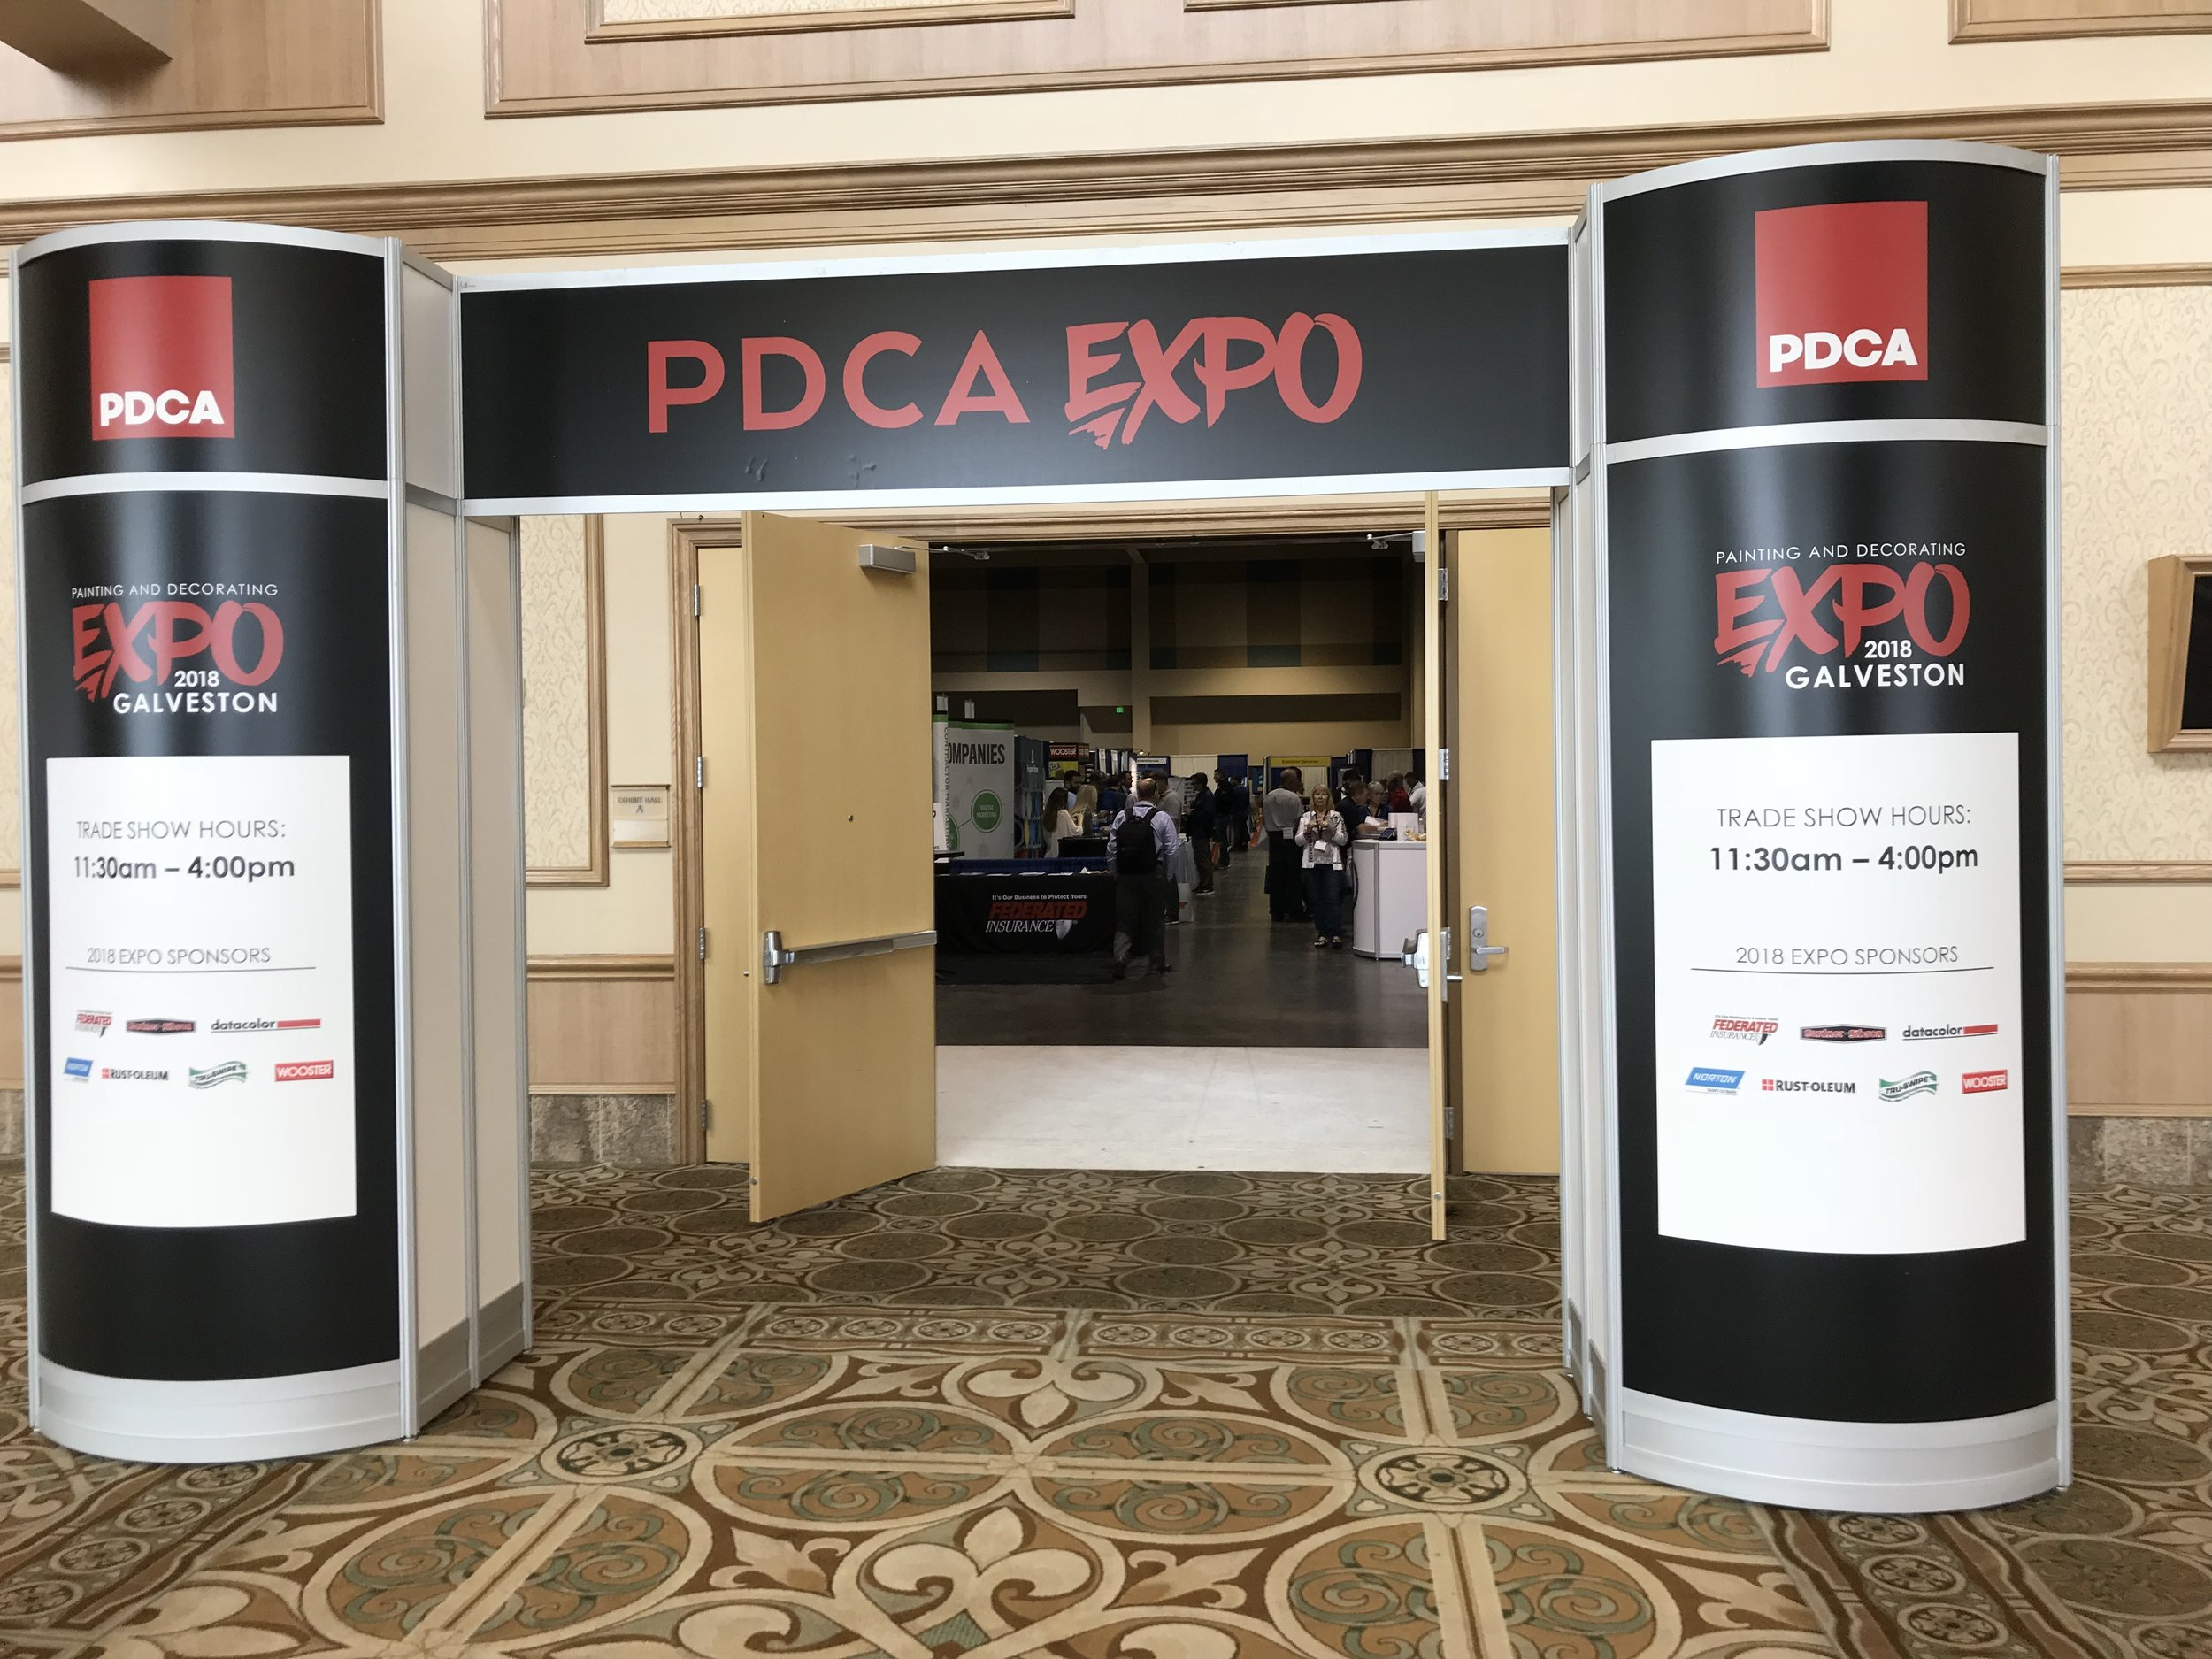 2018 PDCA Paint Expo product giveaway sponsor in Texas! Had a great time and learned a lot